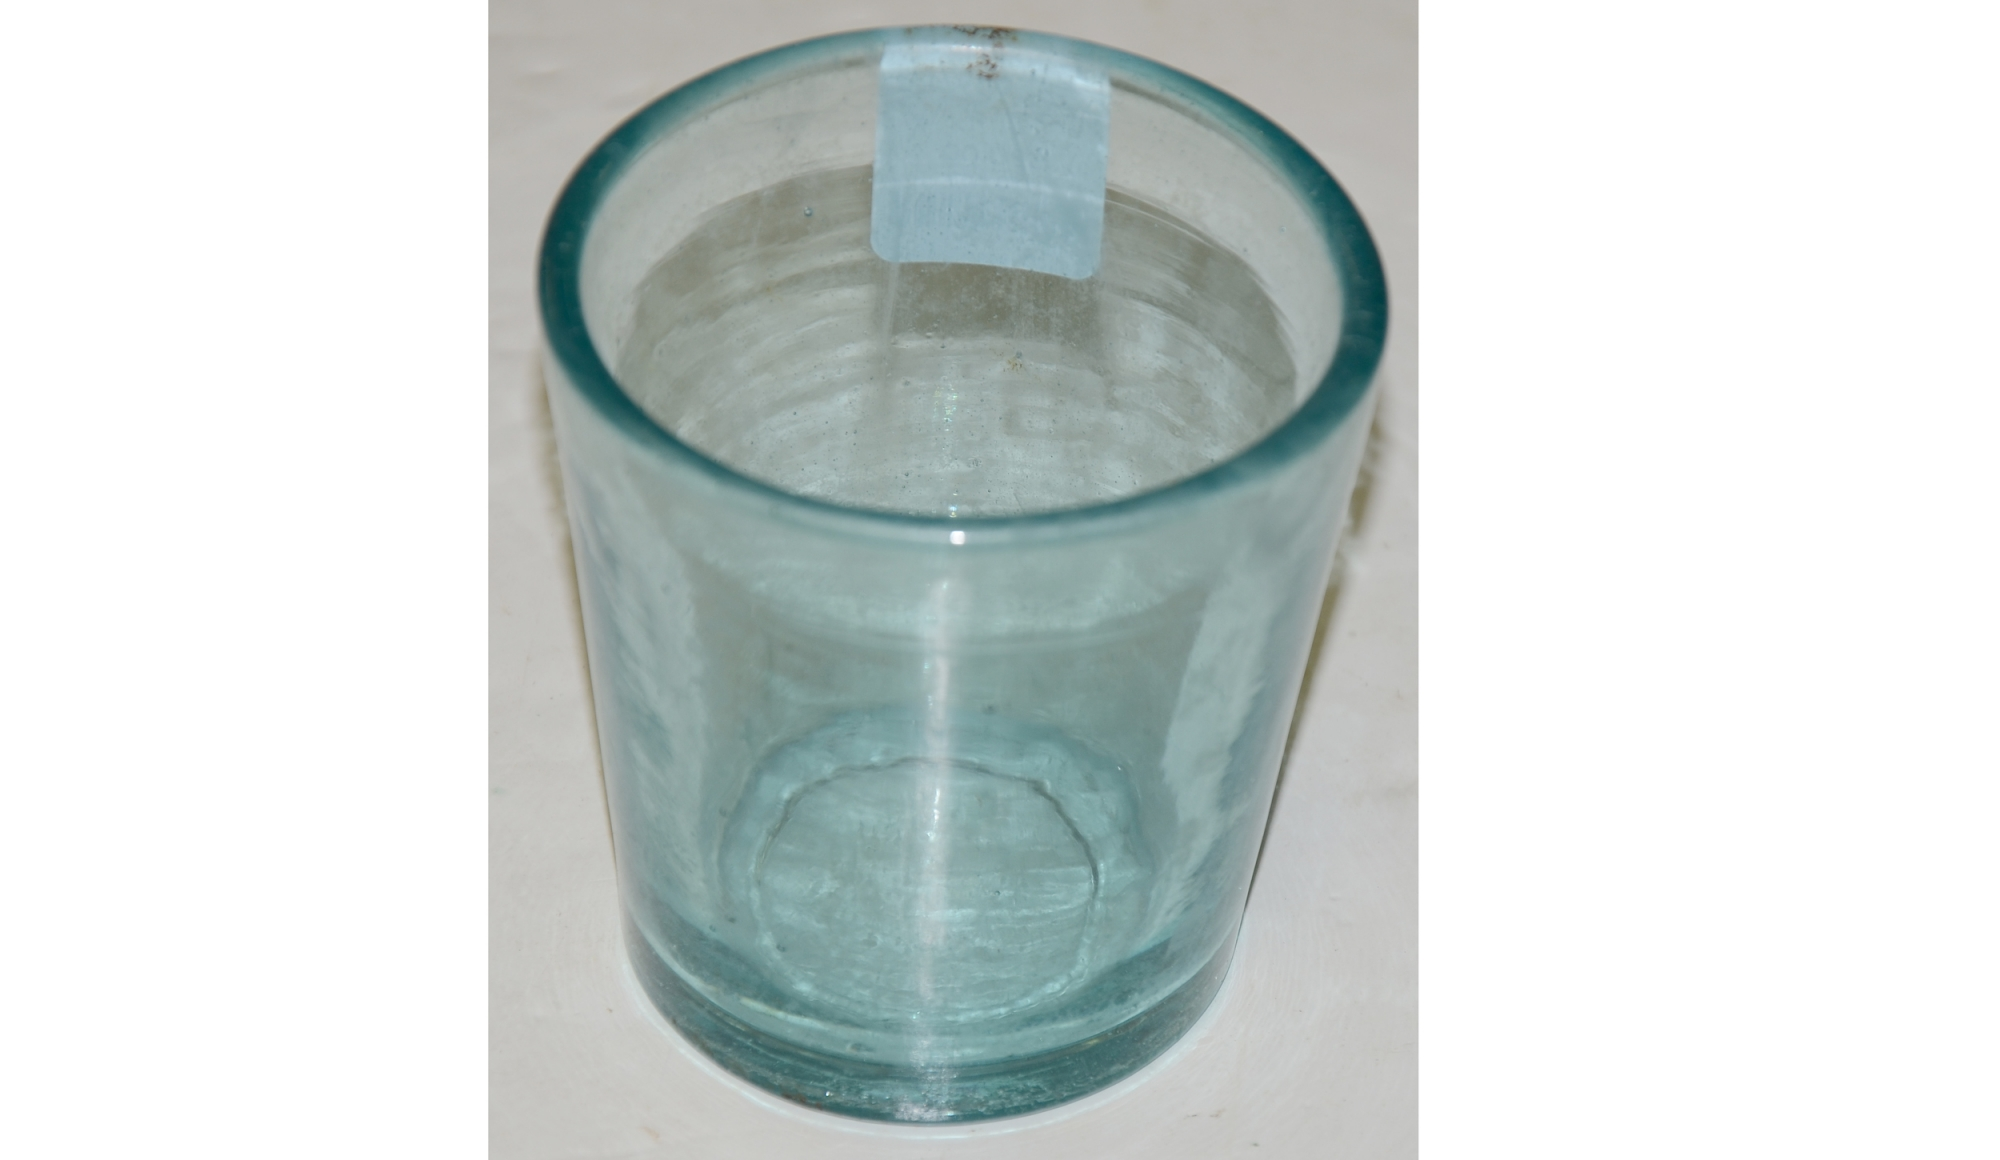 AQUA 1850's FLINT GLASS WHISKEY TUMBLER